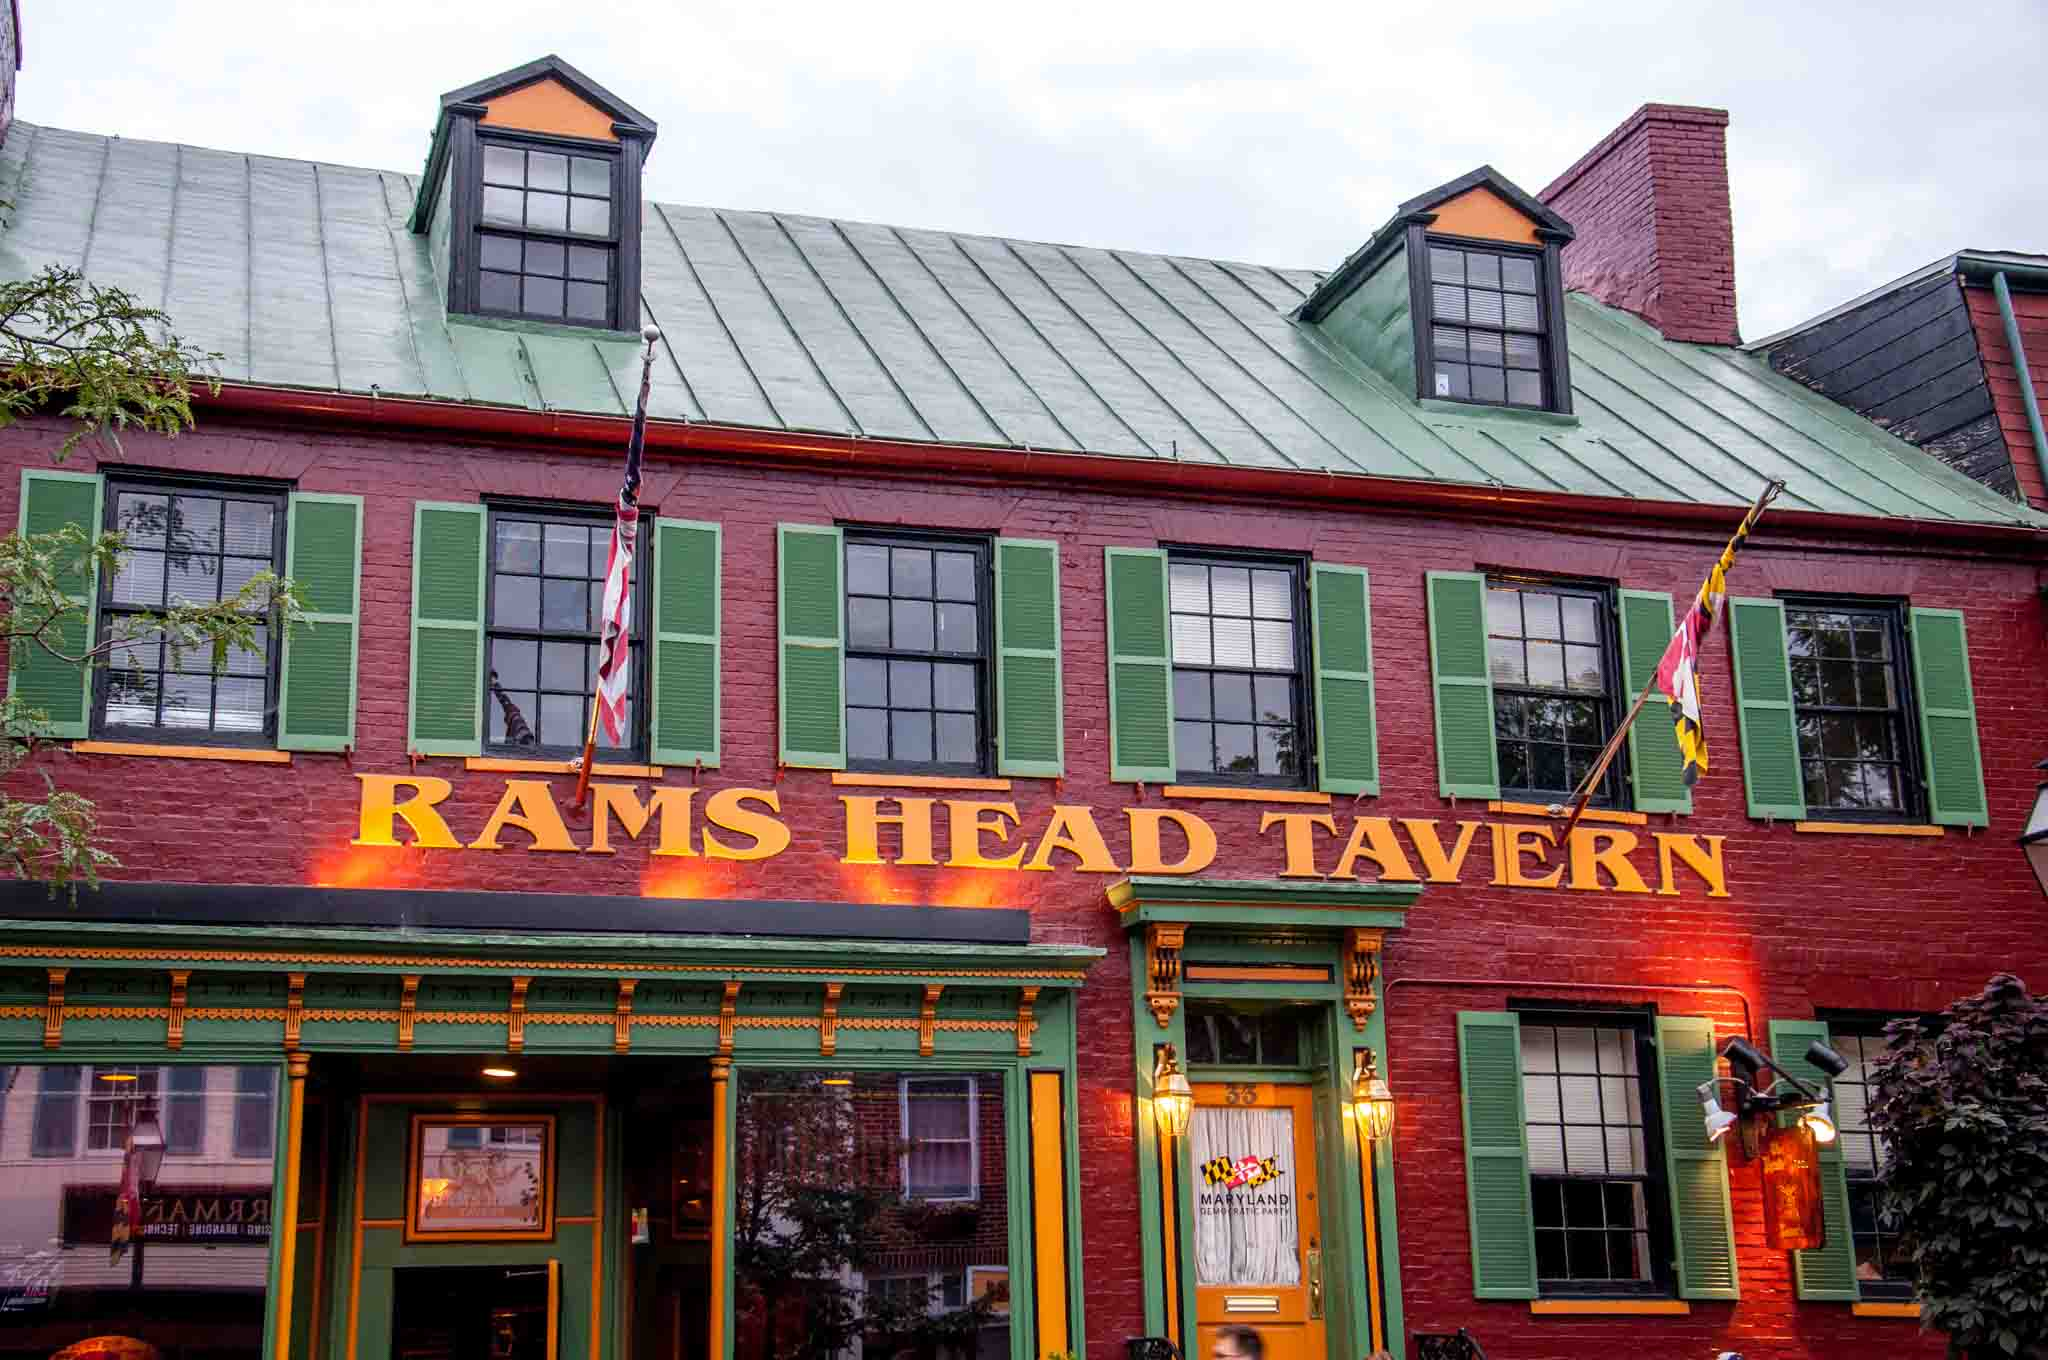 Painted red brick exterior of Rams Head Tavern